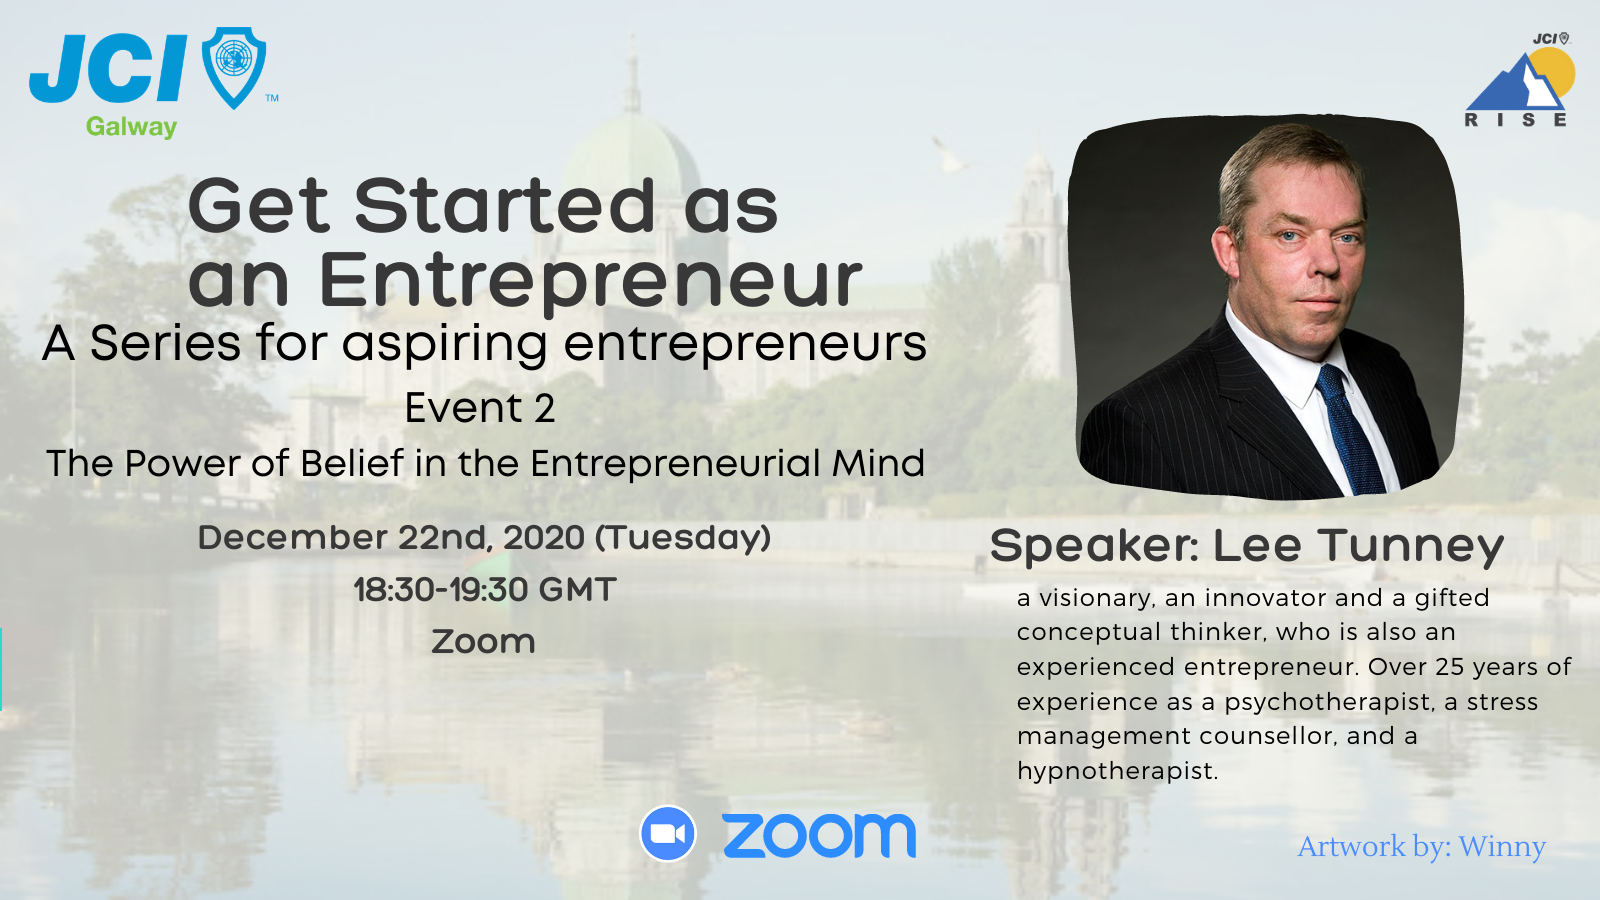 Get Started as an Entrepreneur Series - 2: The Power of Belief in the Entrepreneurial Mind